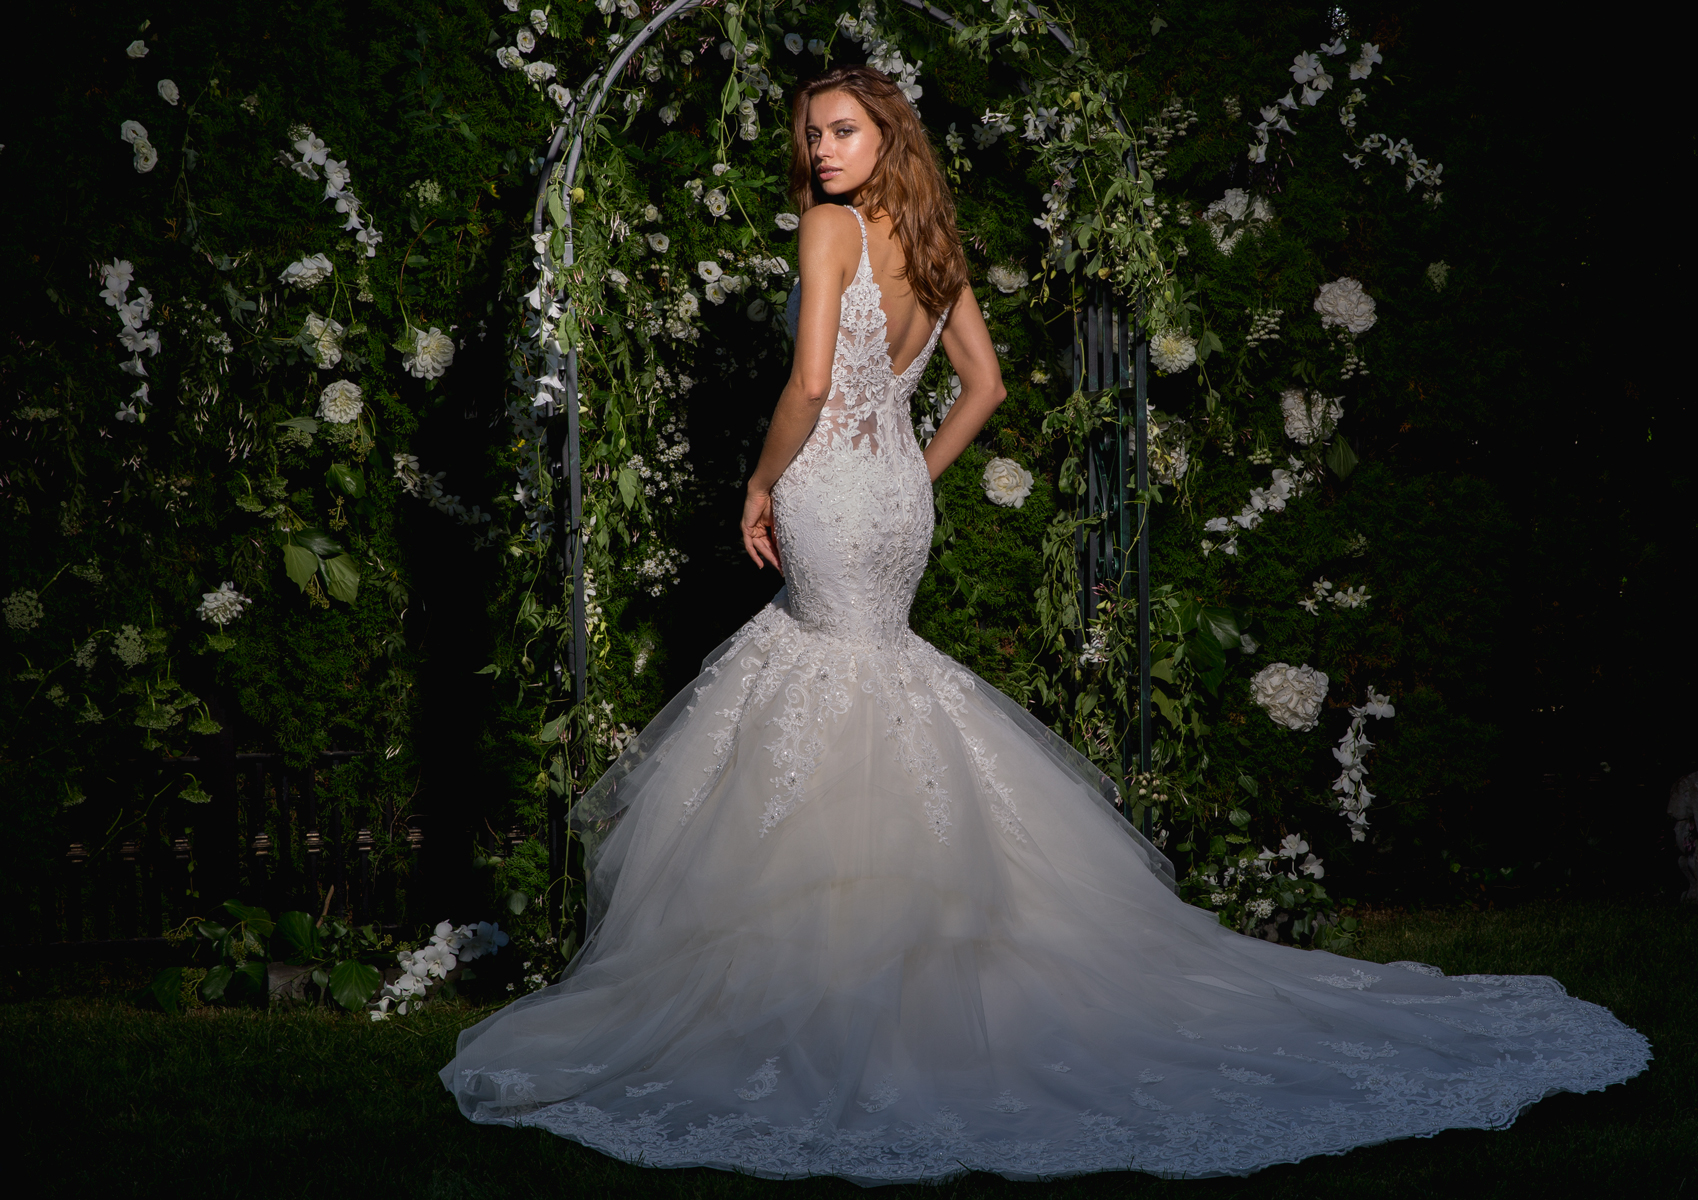 Spaghetti Strap V-neck Lace And Tulle Fit And Flare